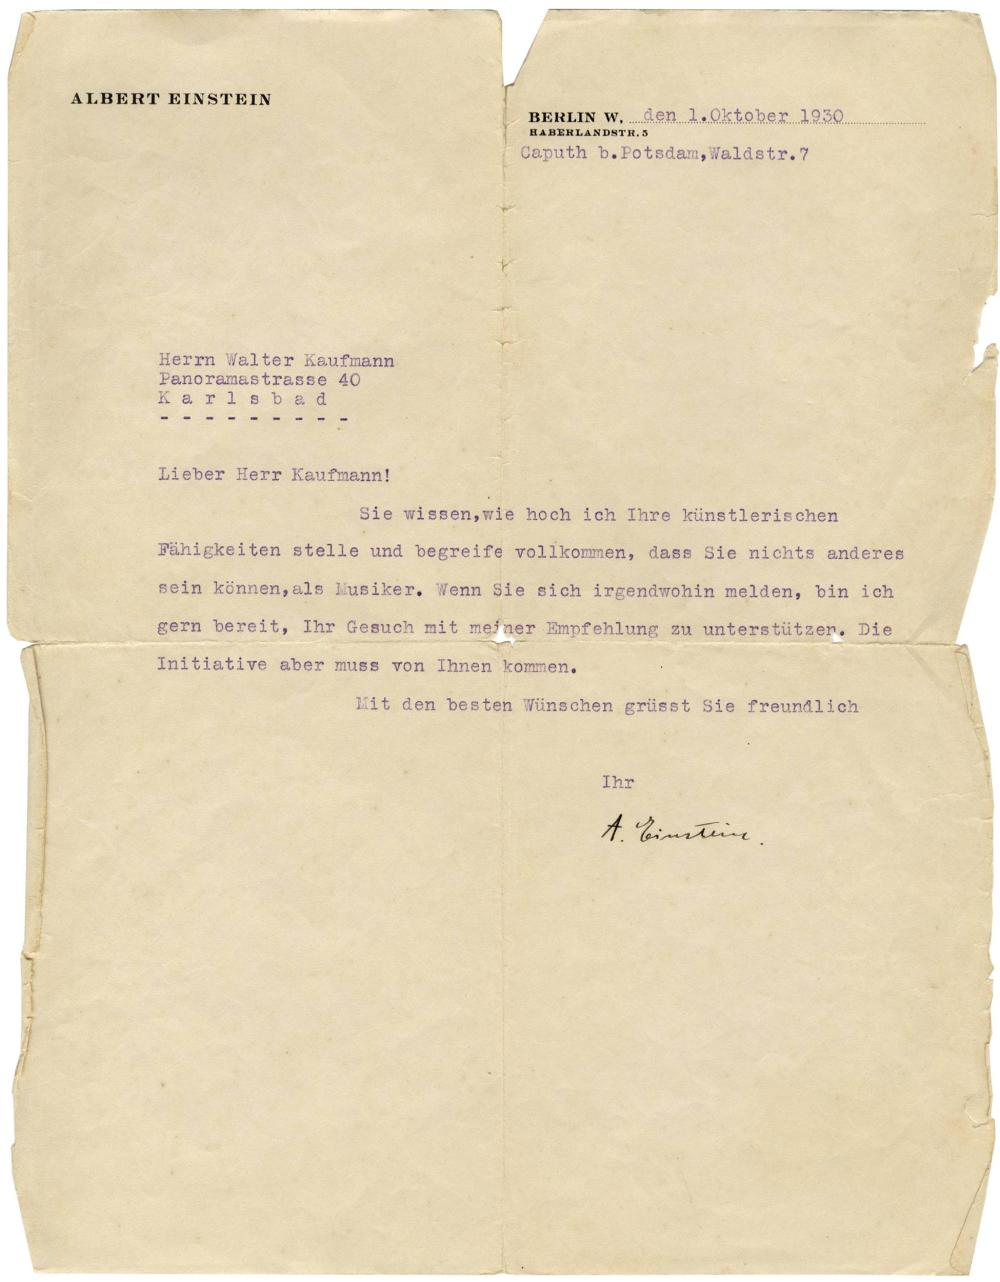 Albert Einstein TLS to Composer Walter Kaufmann, ''You know how highly I esteem your artistic competencies''